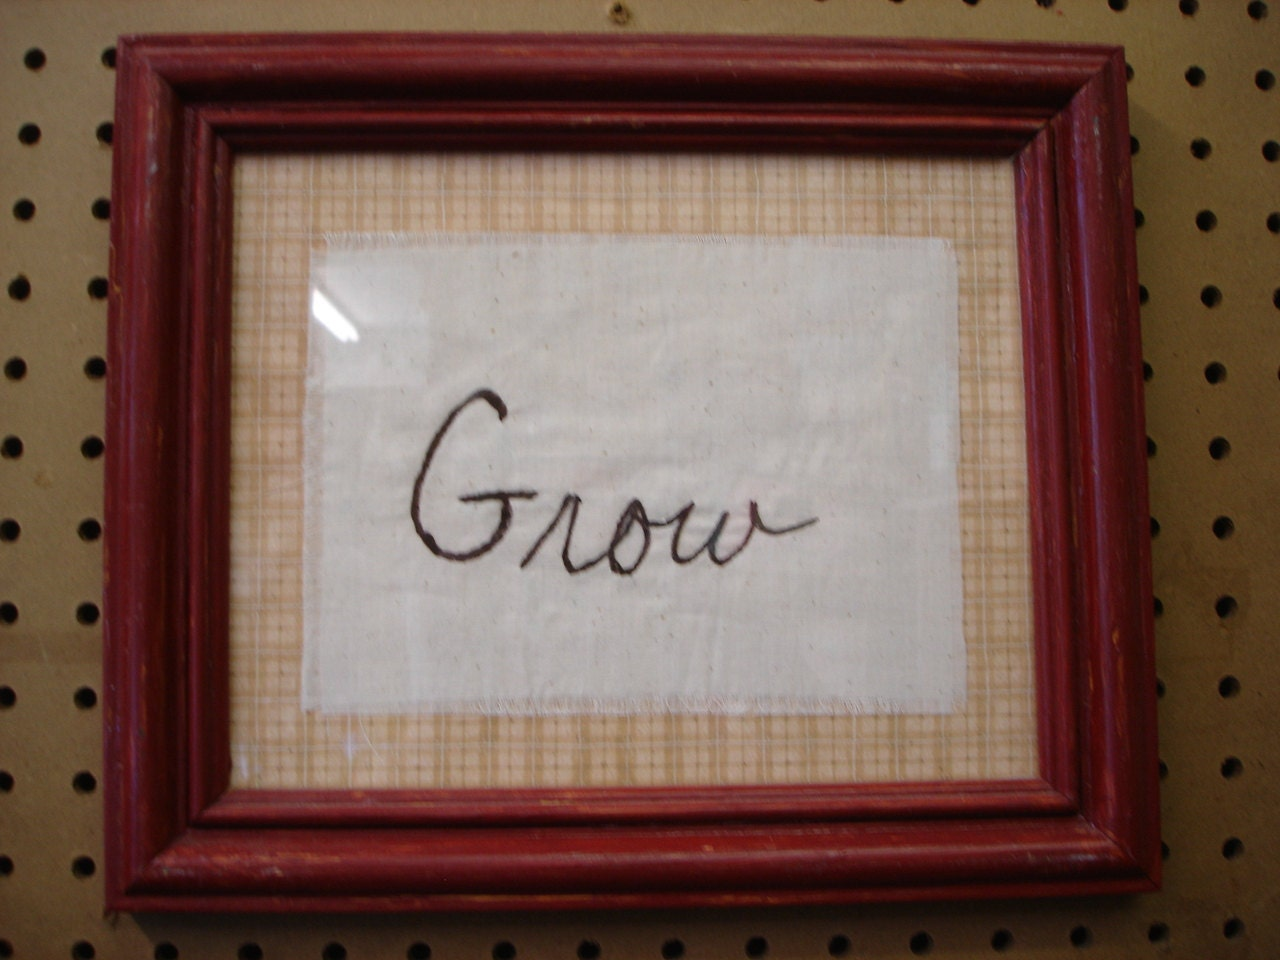 Inspiring,Phrases,Hand,Stitched,Grow,Framed,Housewares,Home_Decor,home_decor,phrase,hand_stitch,inspiring,inspire,frame,framed_phrase,for_your_home,wall_decor,gift,houseware,reclaimed,grow,wood,paper,fabric